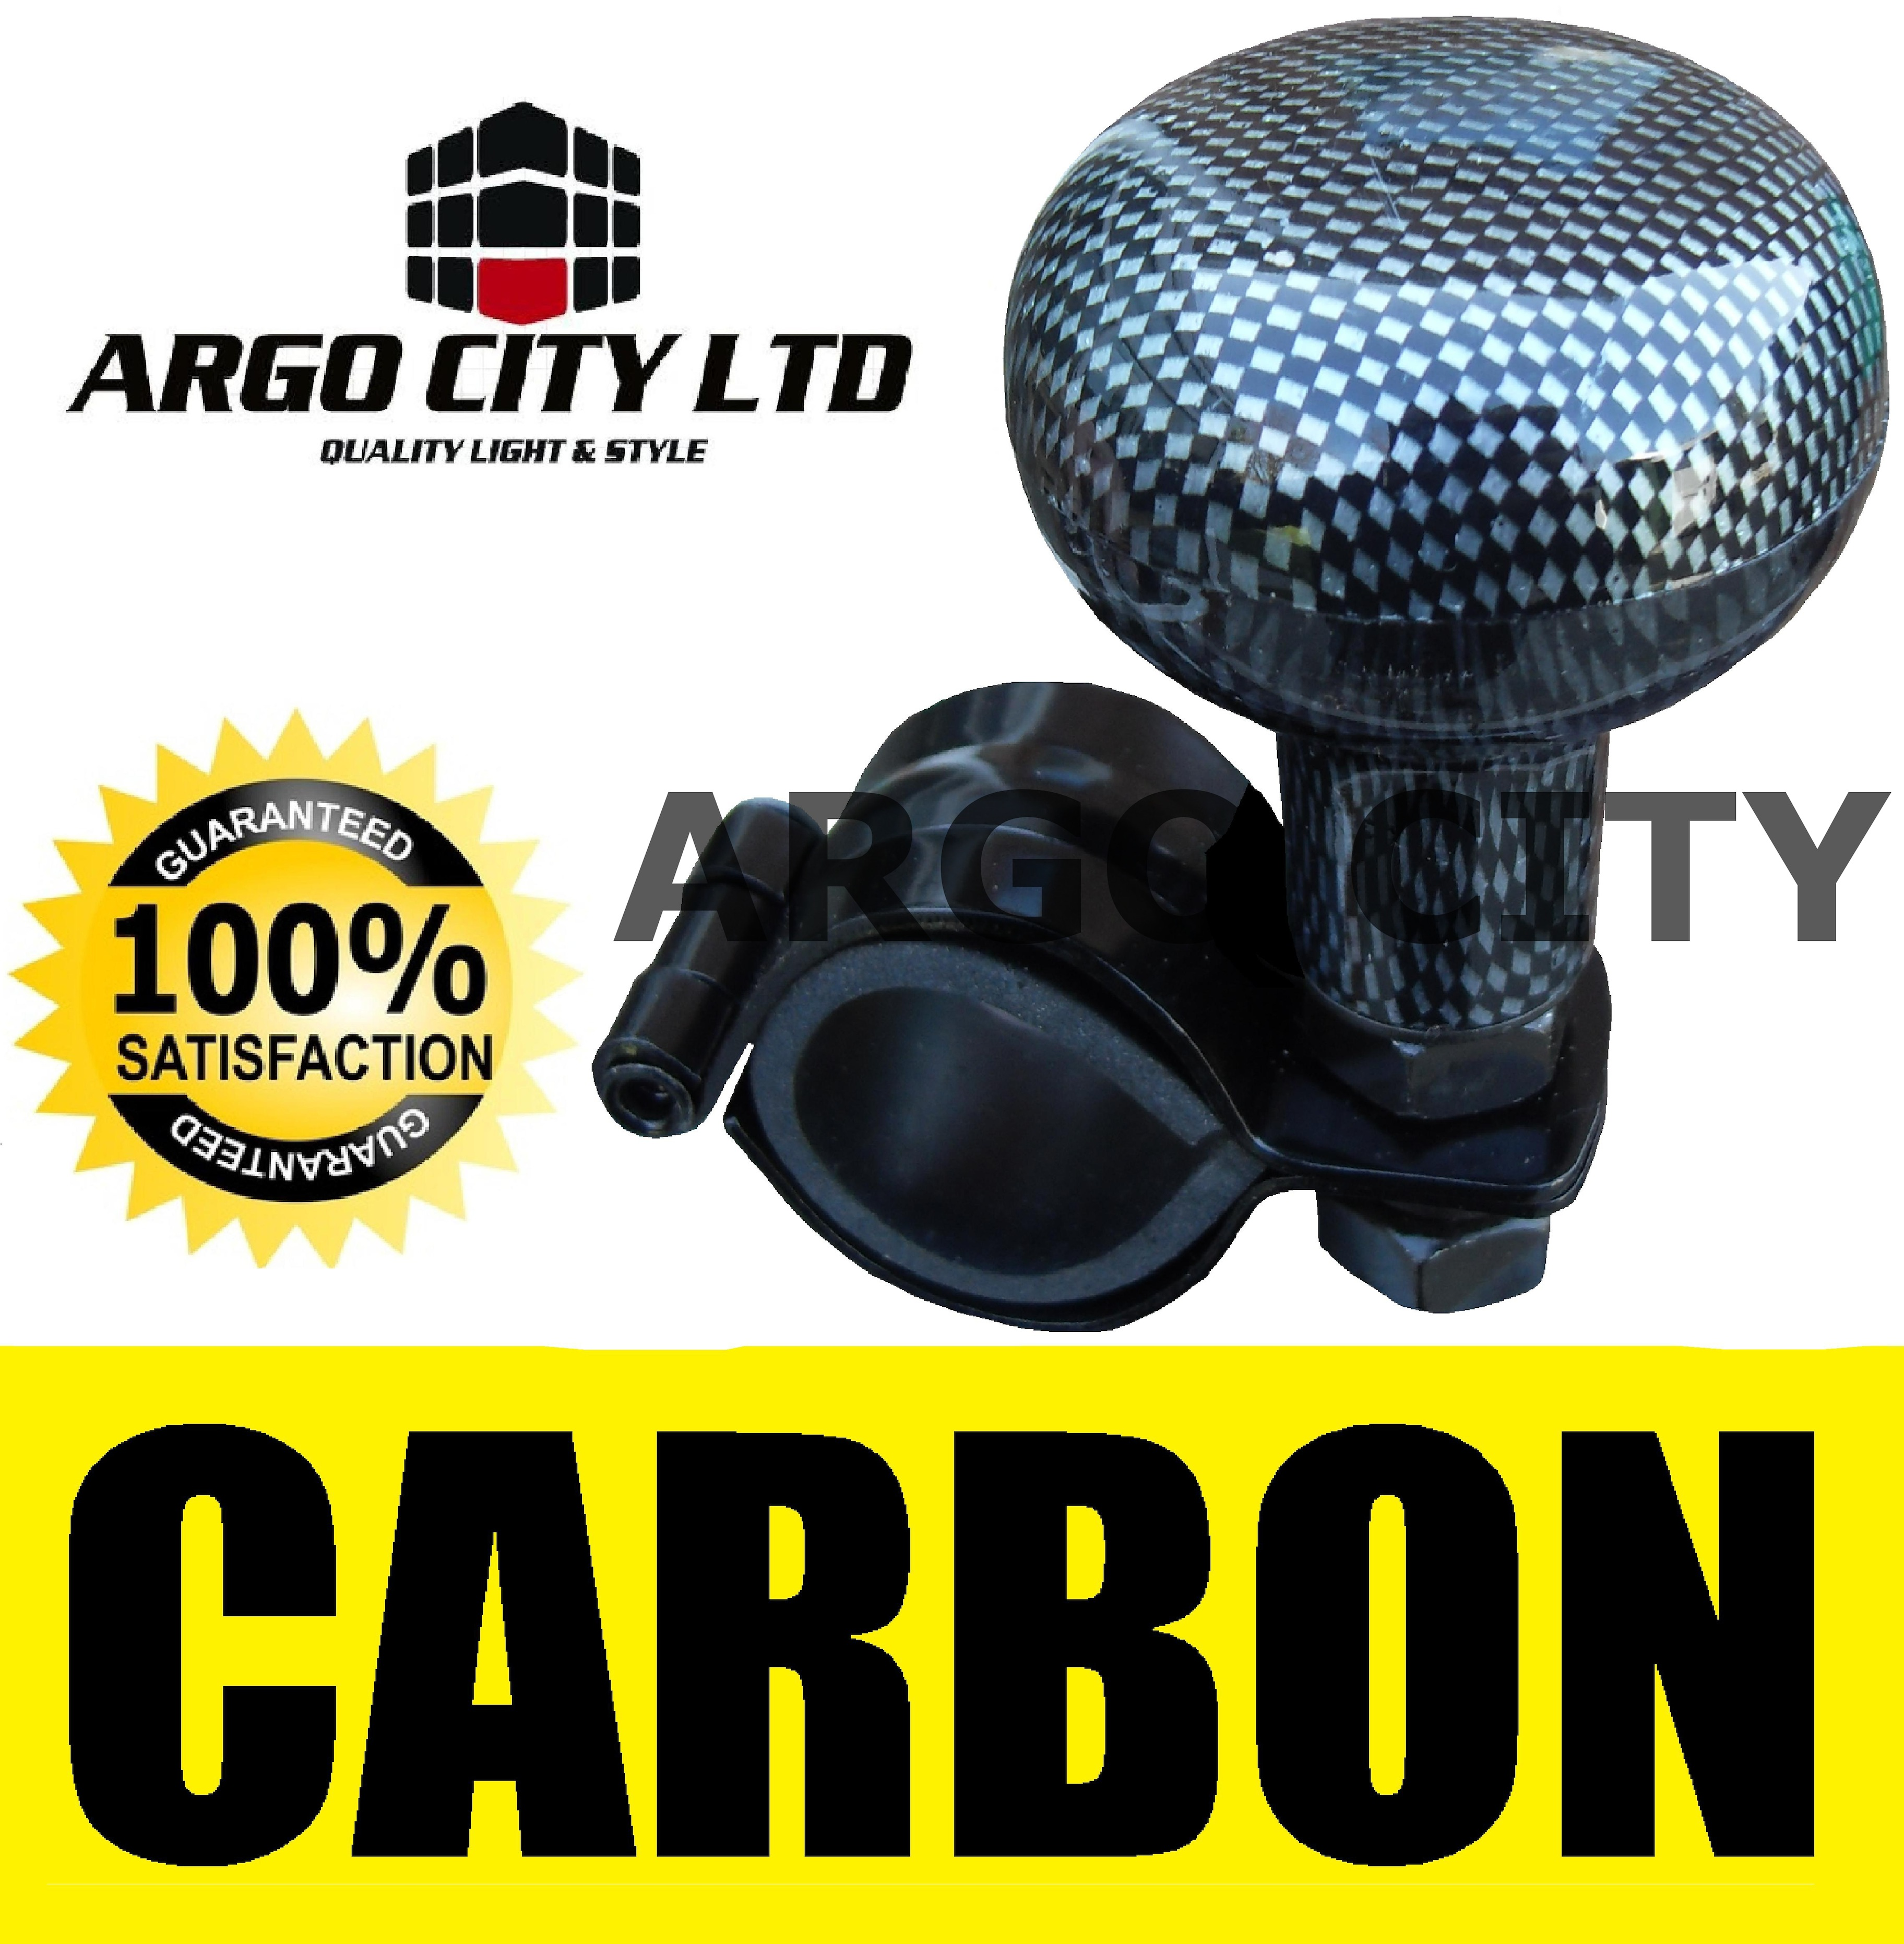 CARBON BLACK STEERING WHEEL KNOB AID ASSISTER CAR VAN MITSUBISHI ASX CROSSOVER